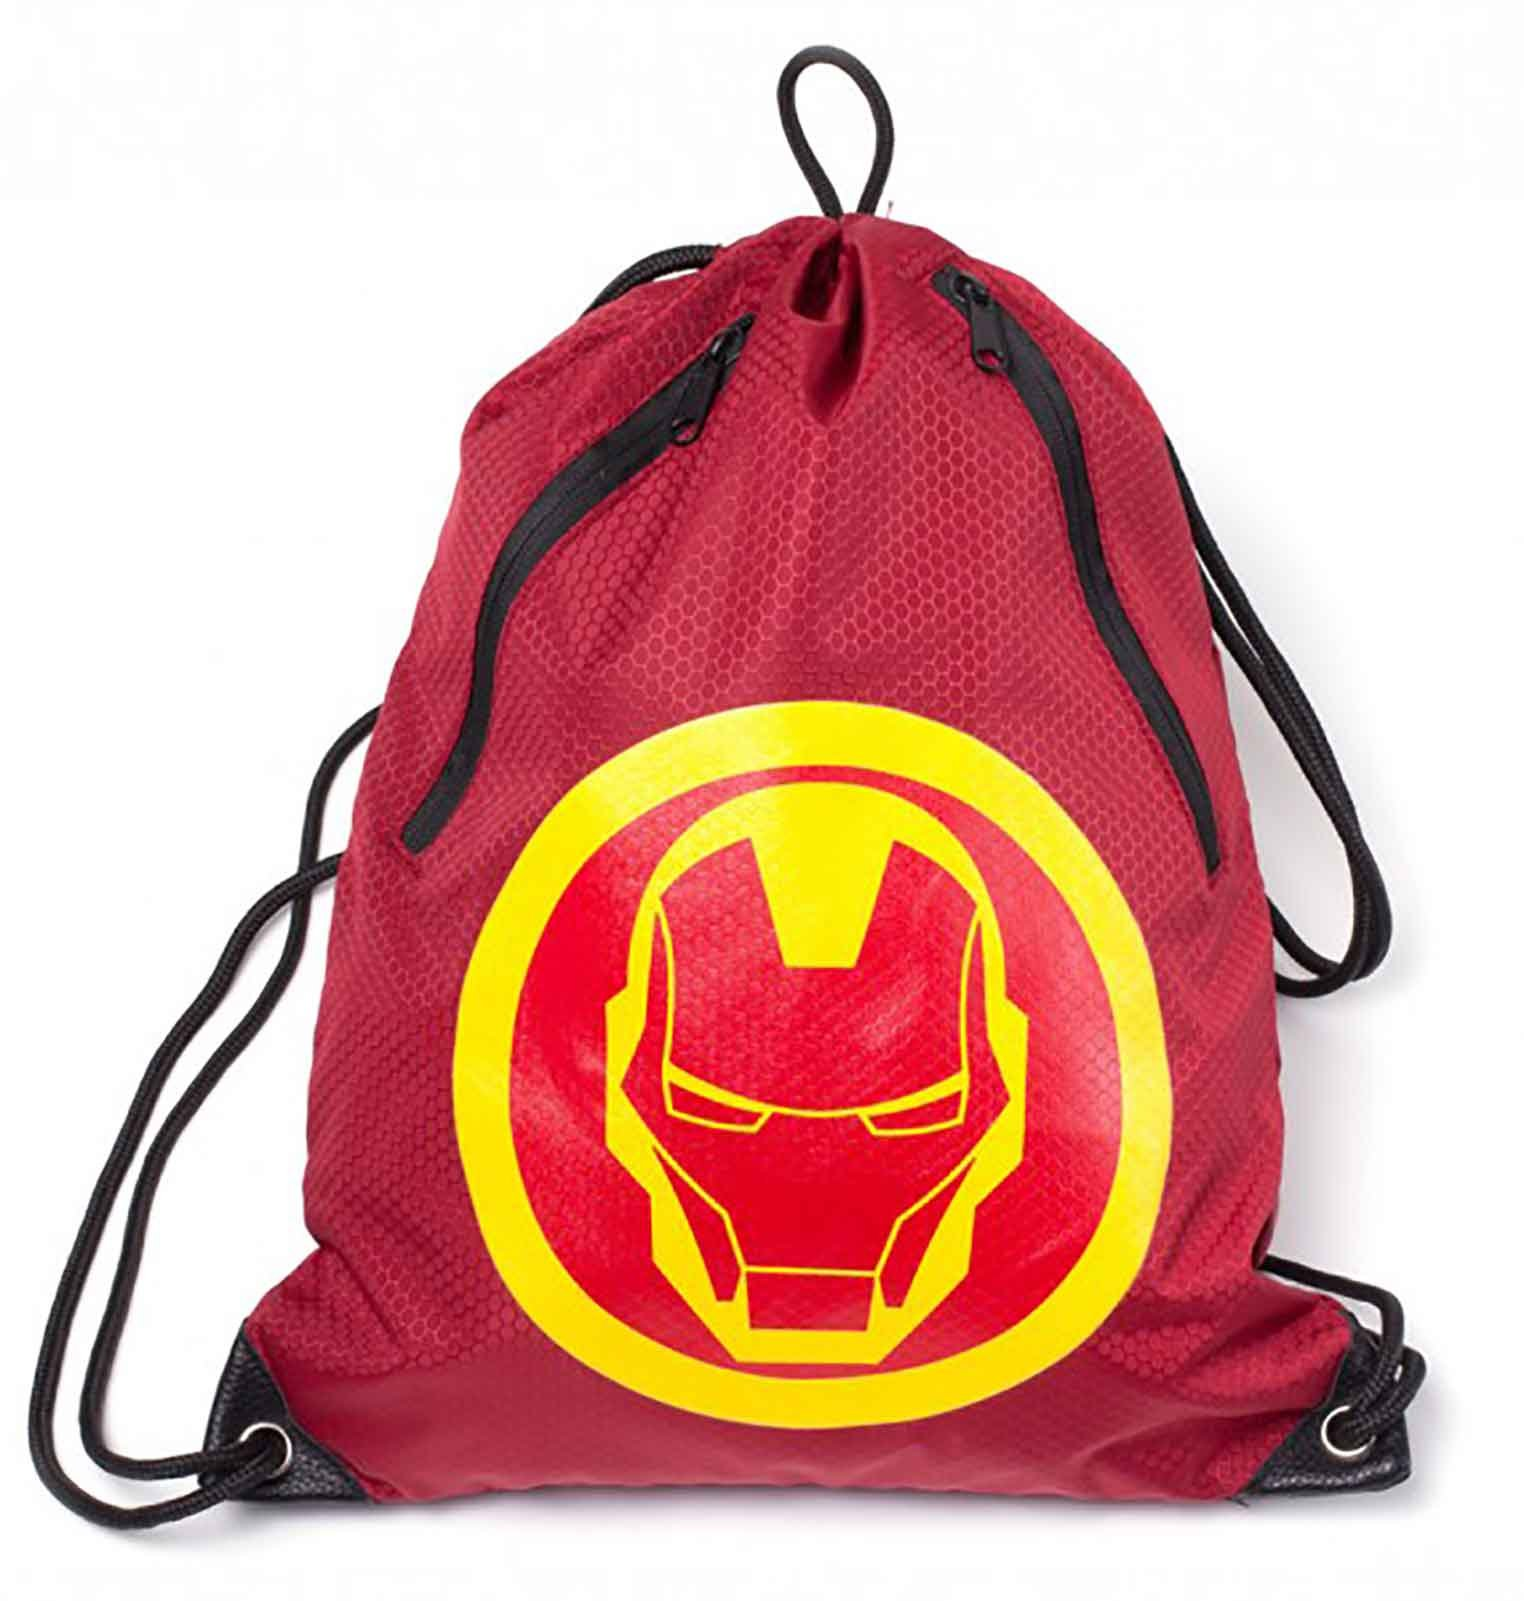 Iron Man Gym Bag Iron Man Mask Rubber Print Official Marvel Red